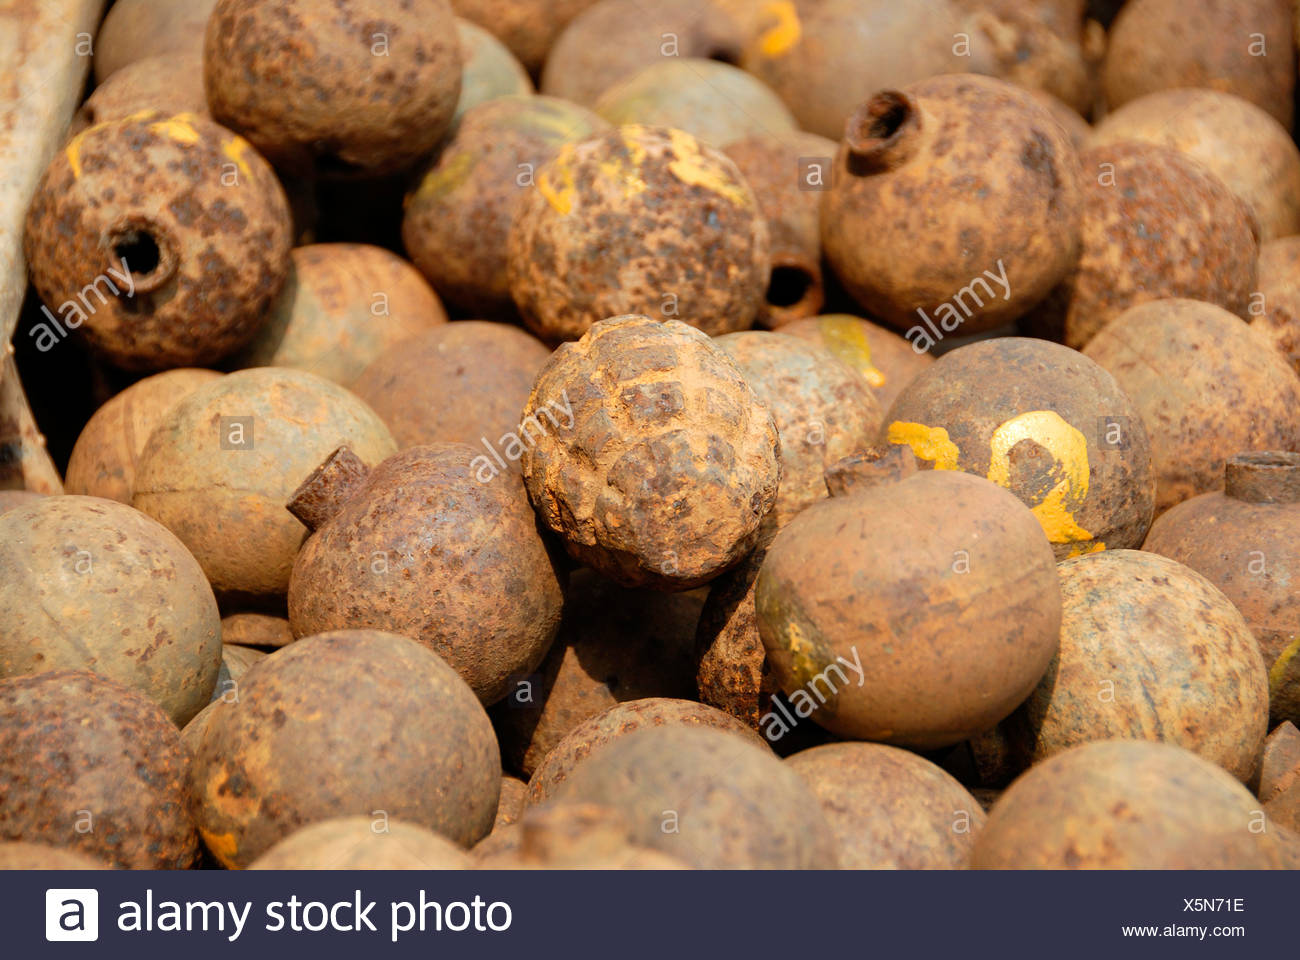 Collection of old rusty American bombs, 'Bombies', dropped on Laos during the 2nd Indochina war by the US Airforce, Vietnam war - Stock Image